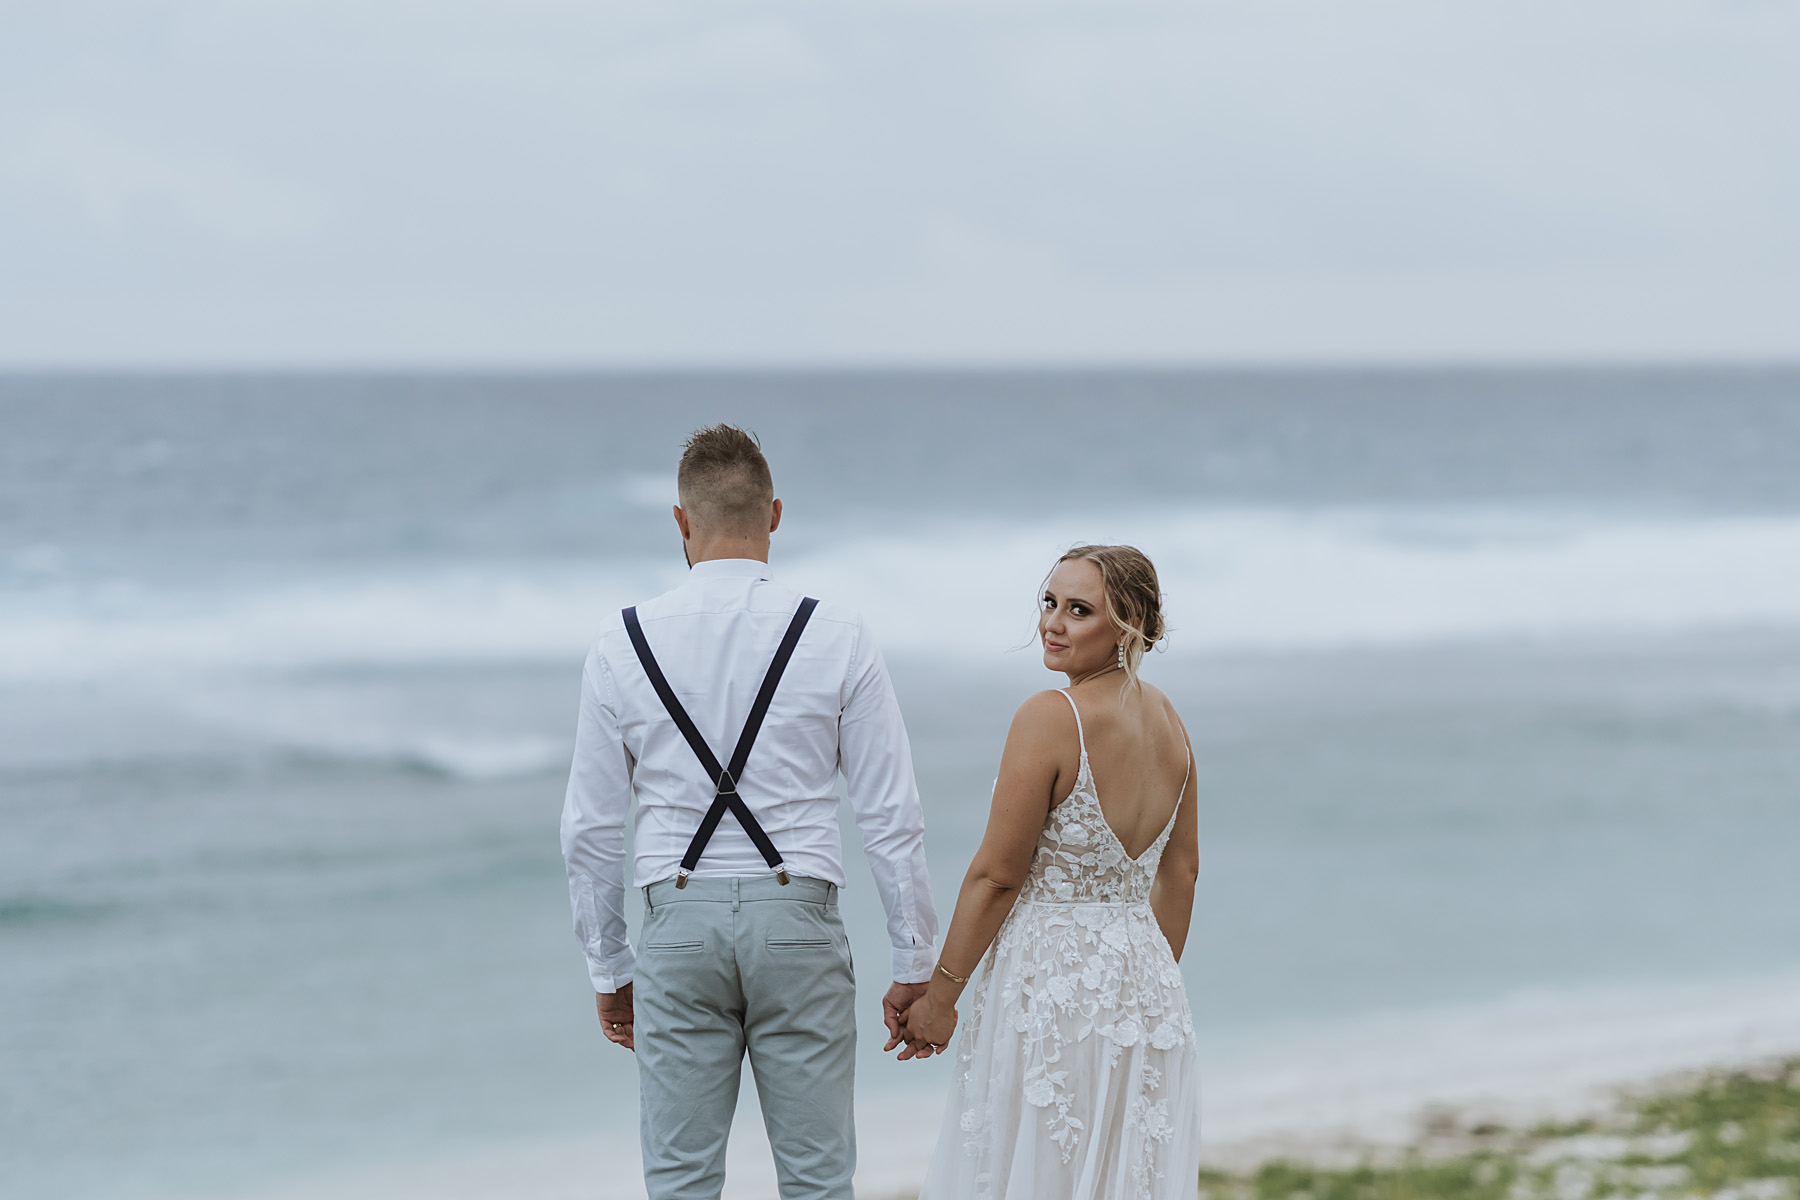 Vanuatu wedding photographer